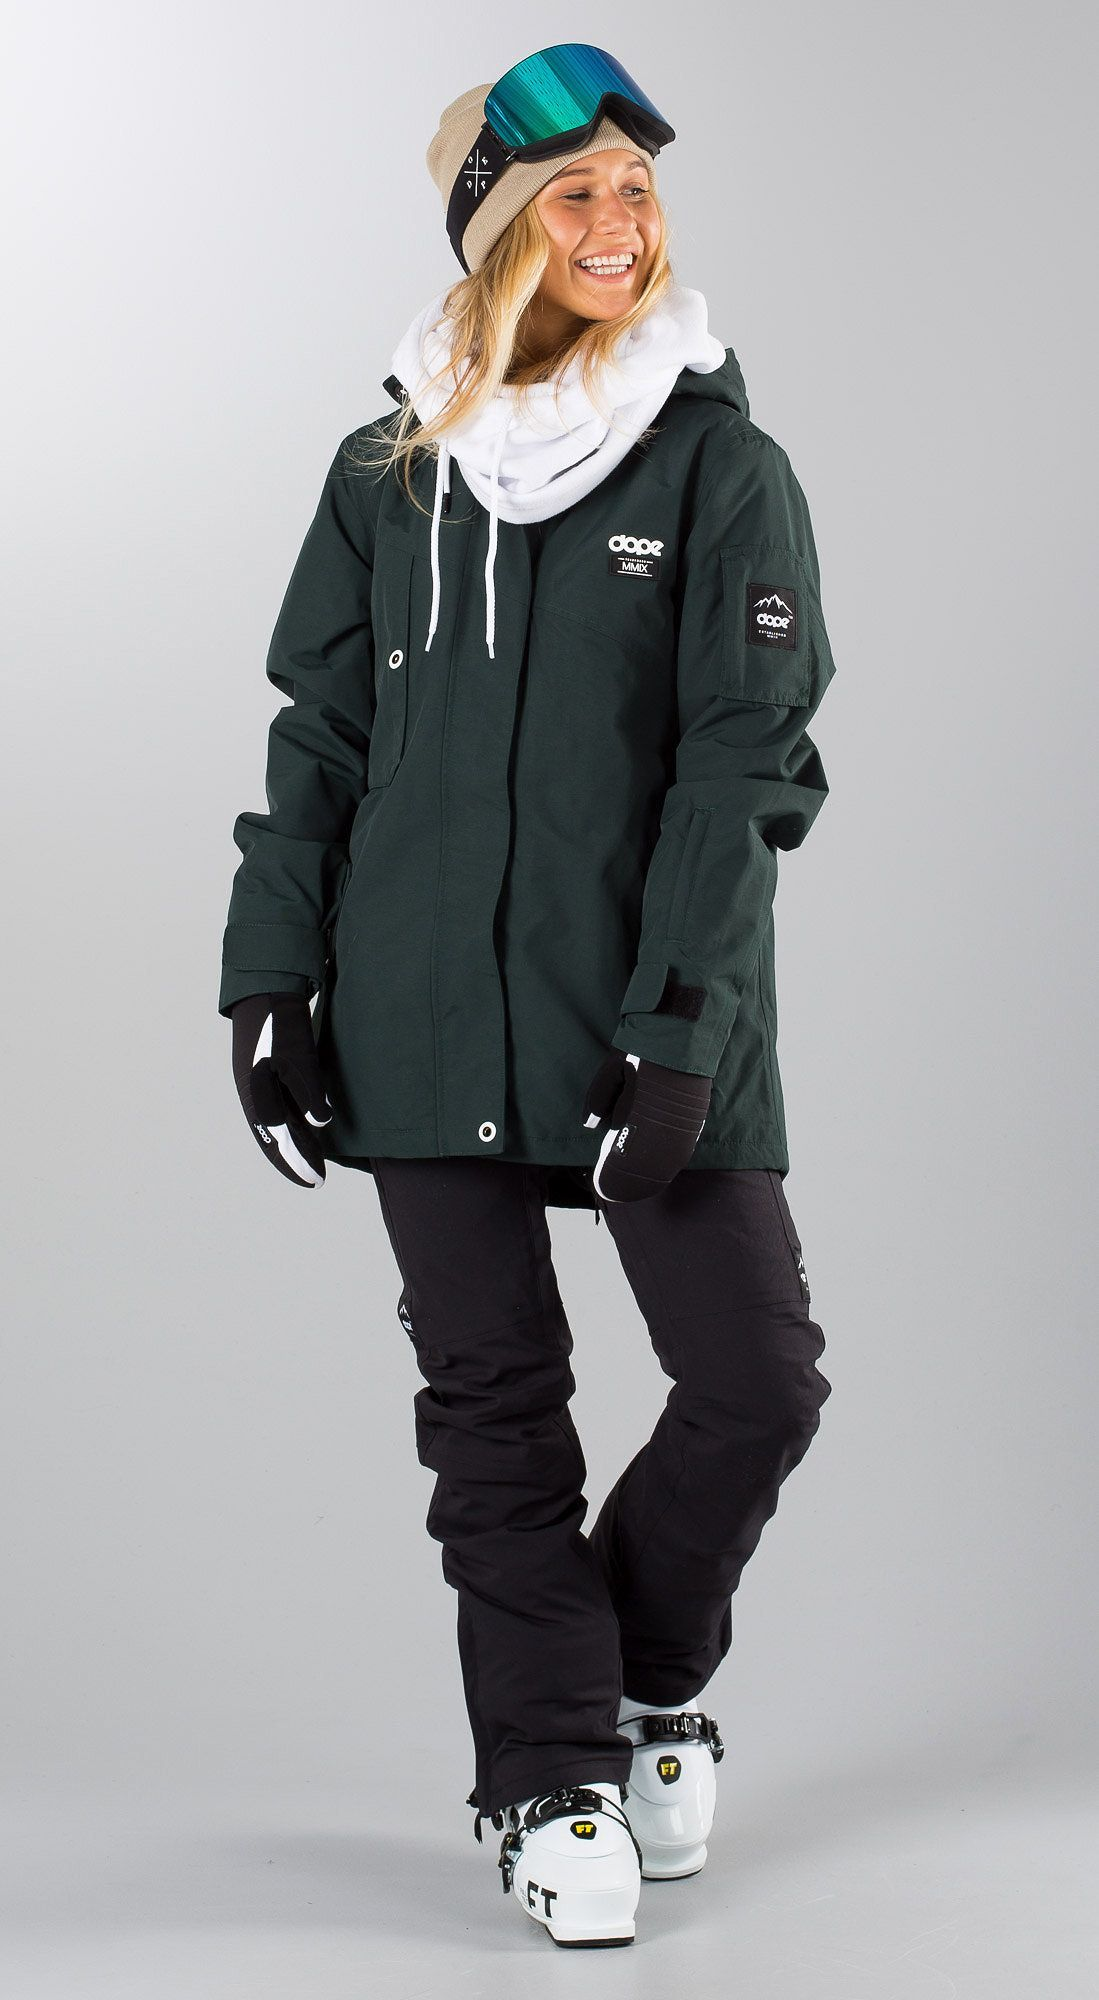 Pin by Becca Behrens on Snowboarding gear in 2020 | Womens